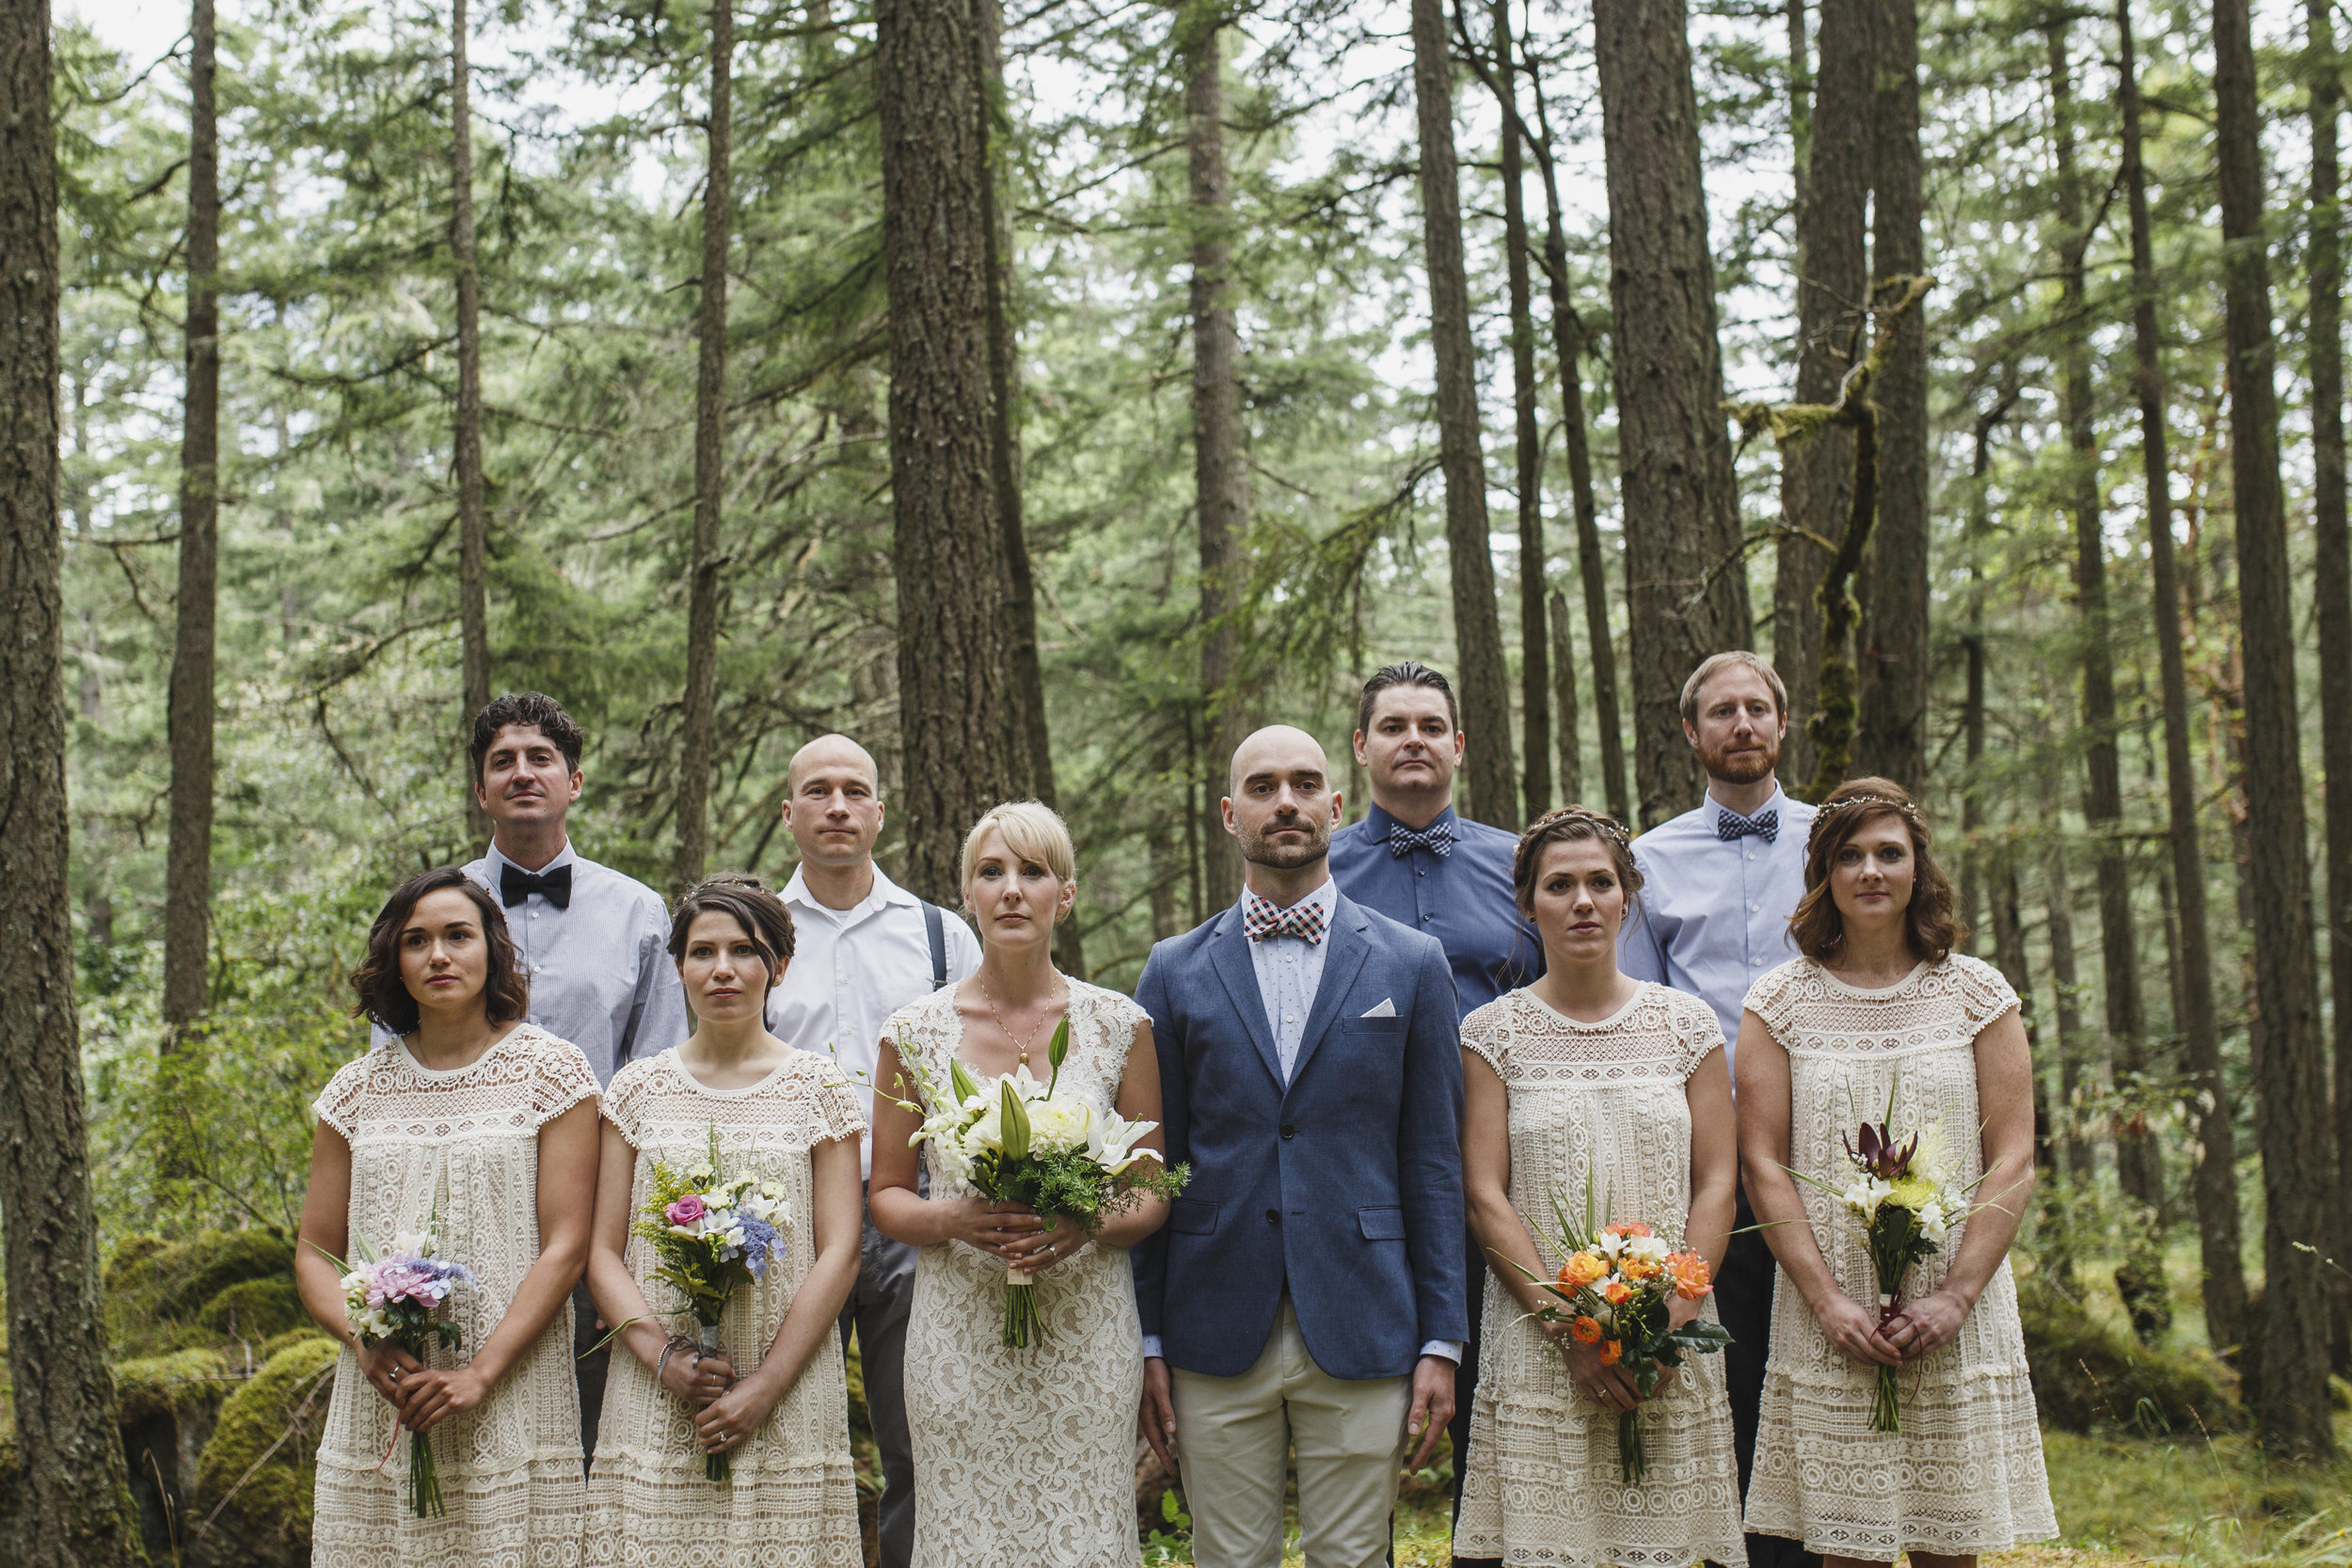 Newly wed Bride and Groom with Bridesmaid and Groomsmen Forest Park wedding King Francis Park Vancouver Island